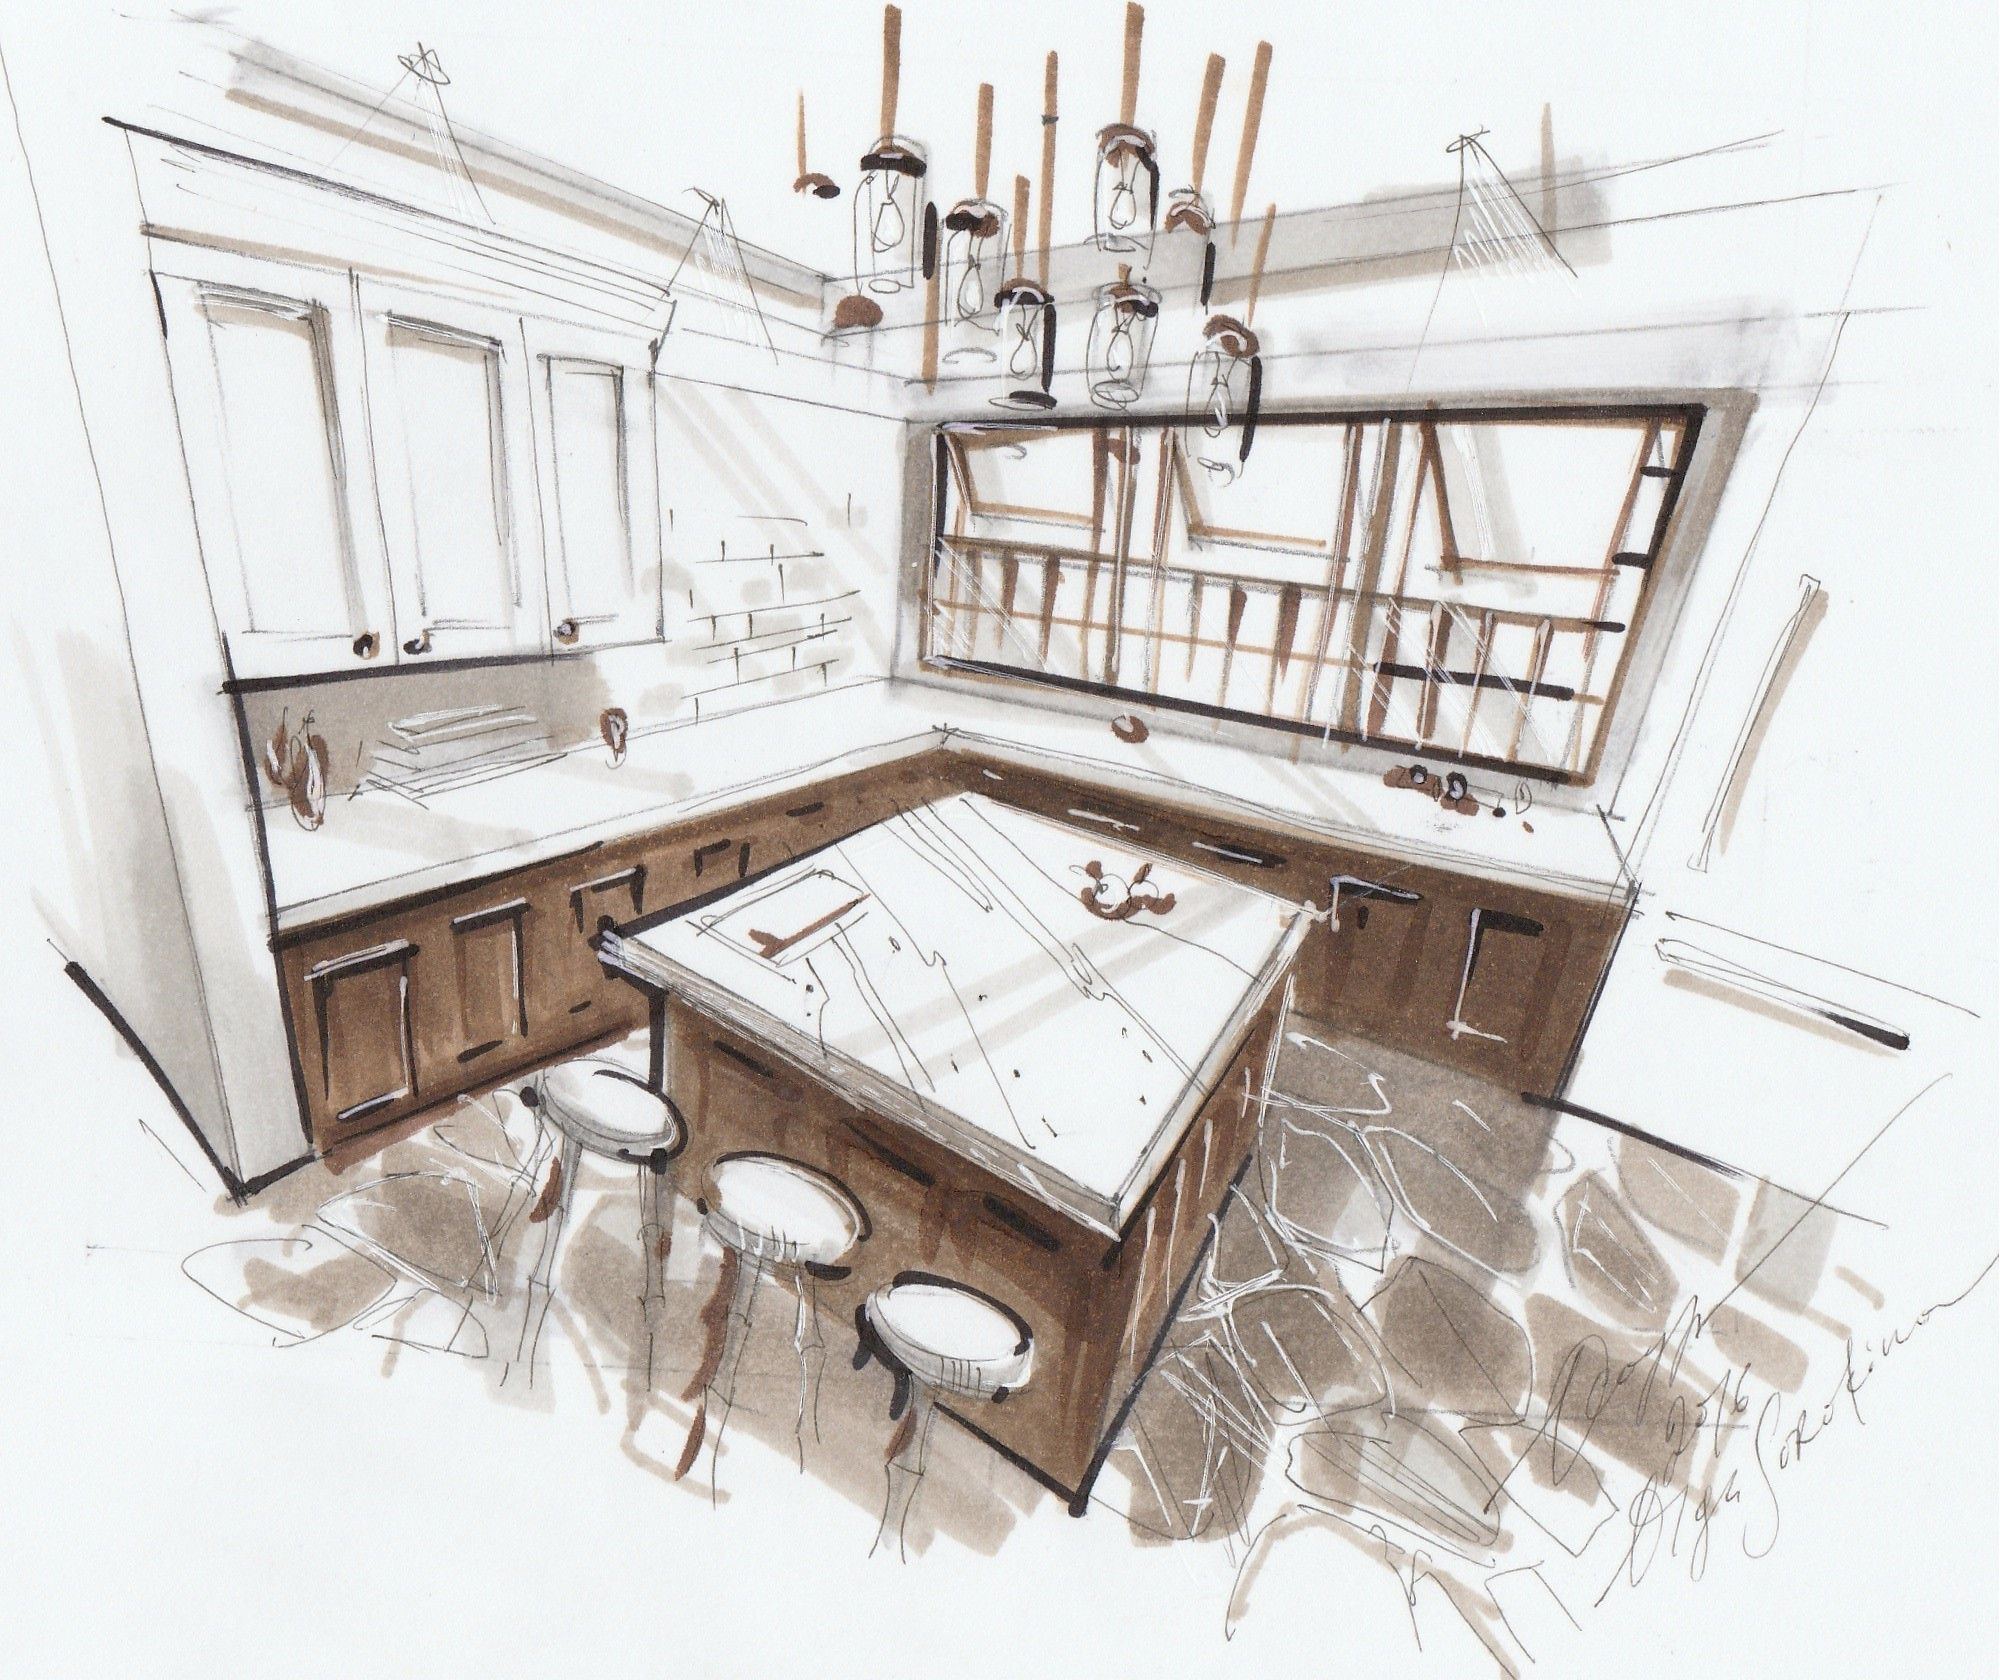 Sketch of a kitchen room in 3 point perspective 4 video lessons interior sketching with markers advanced level sketching school by olga sorokina